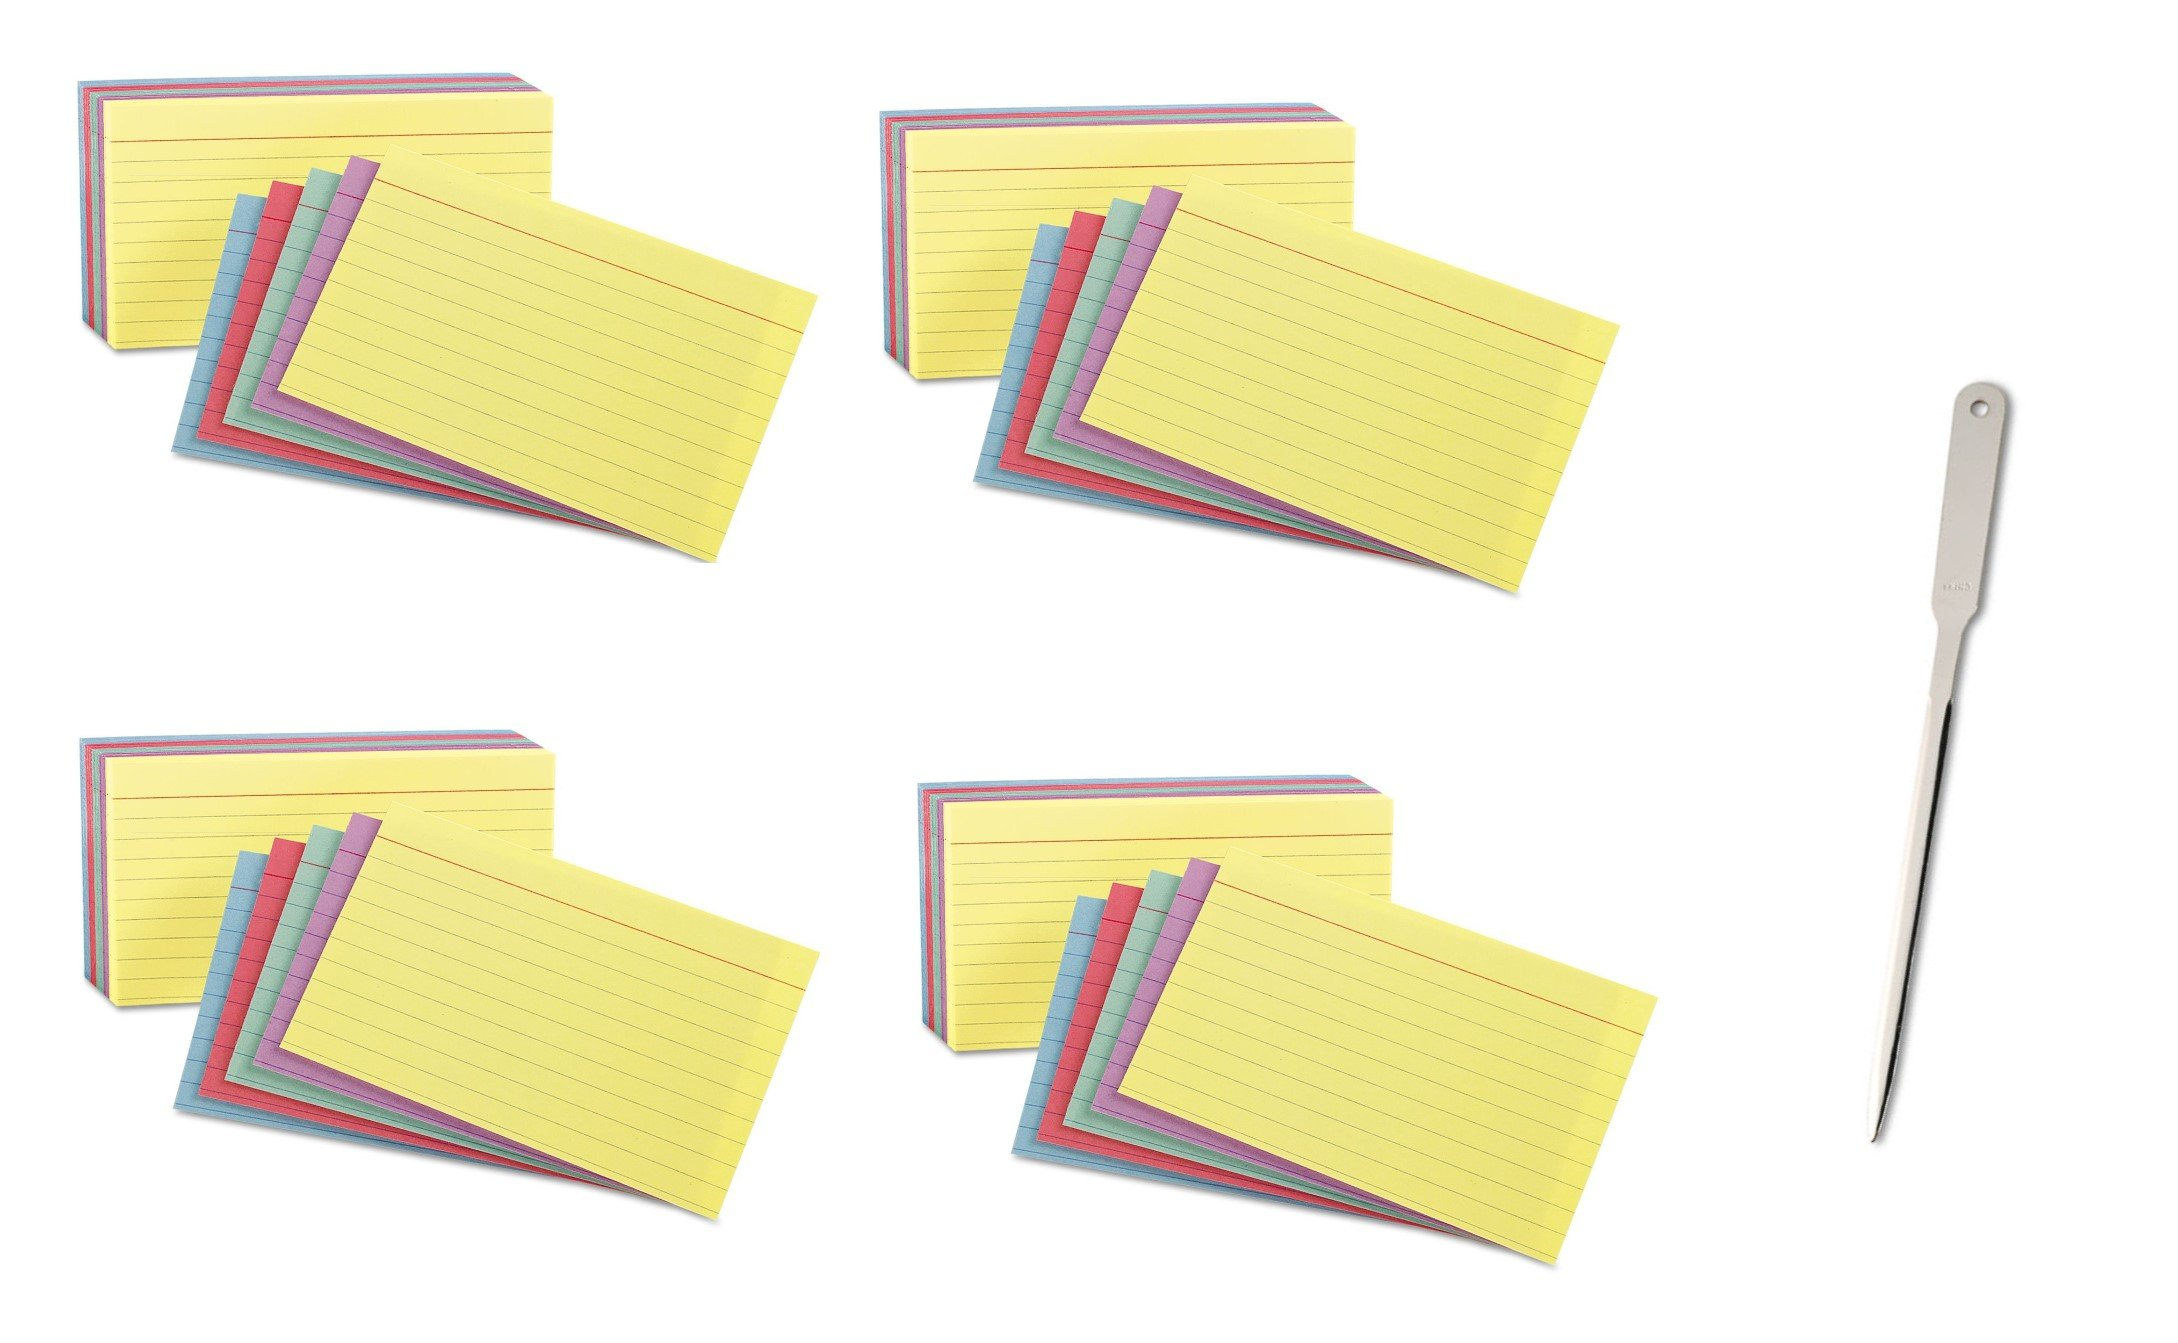 Oxford Oxford 40280 Rainbow Pack Index Card, 3 x 5, Ruled, 4 Pack of 100 Cards, 400 Cards Total - Bundle Includes a Letter Opener